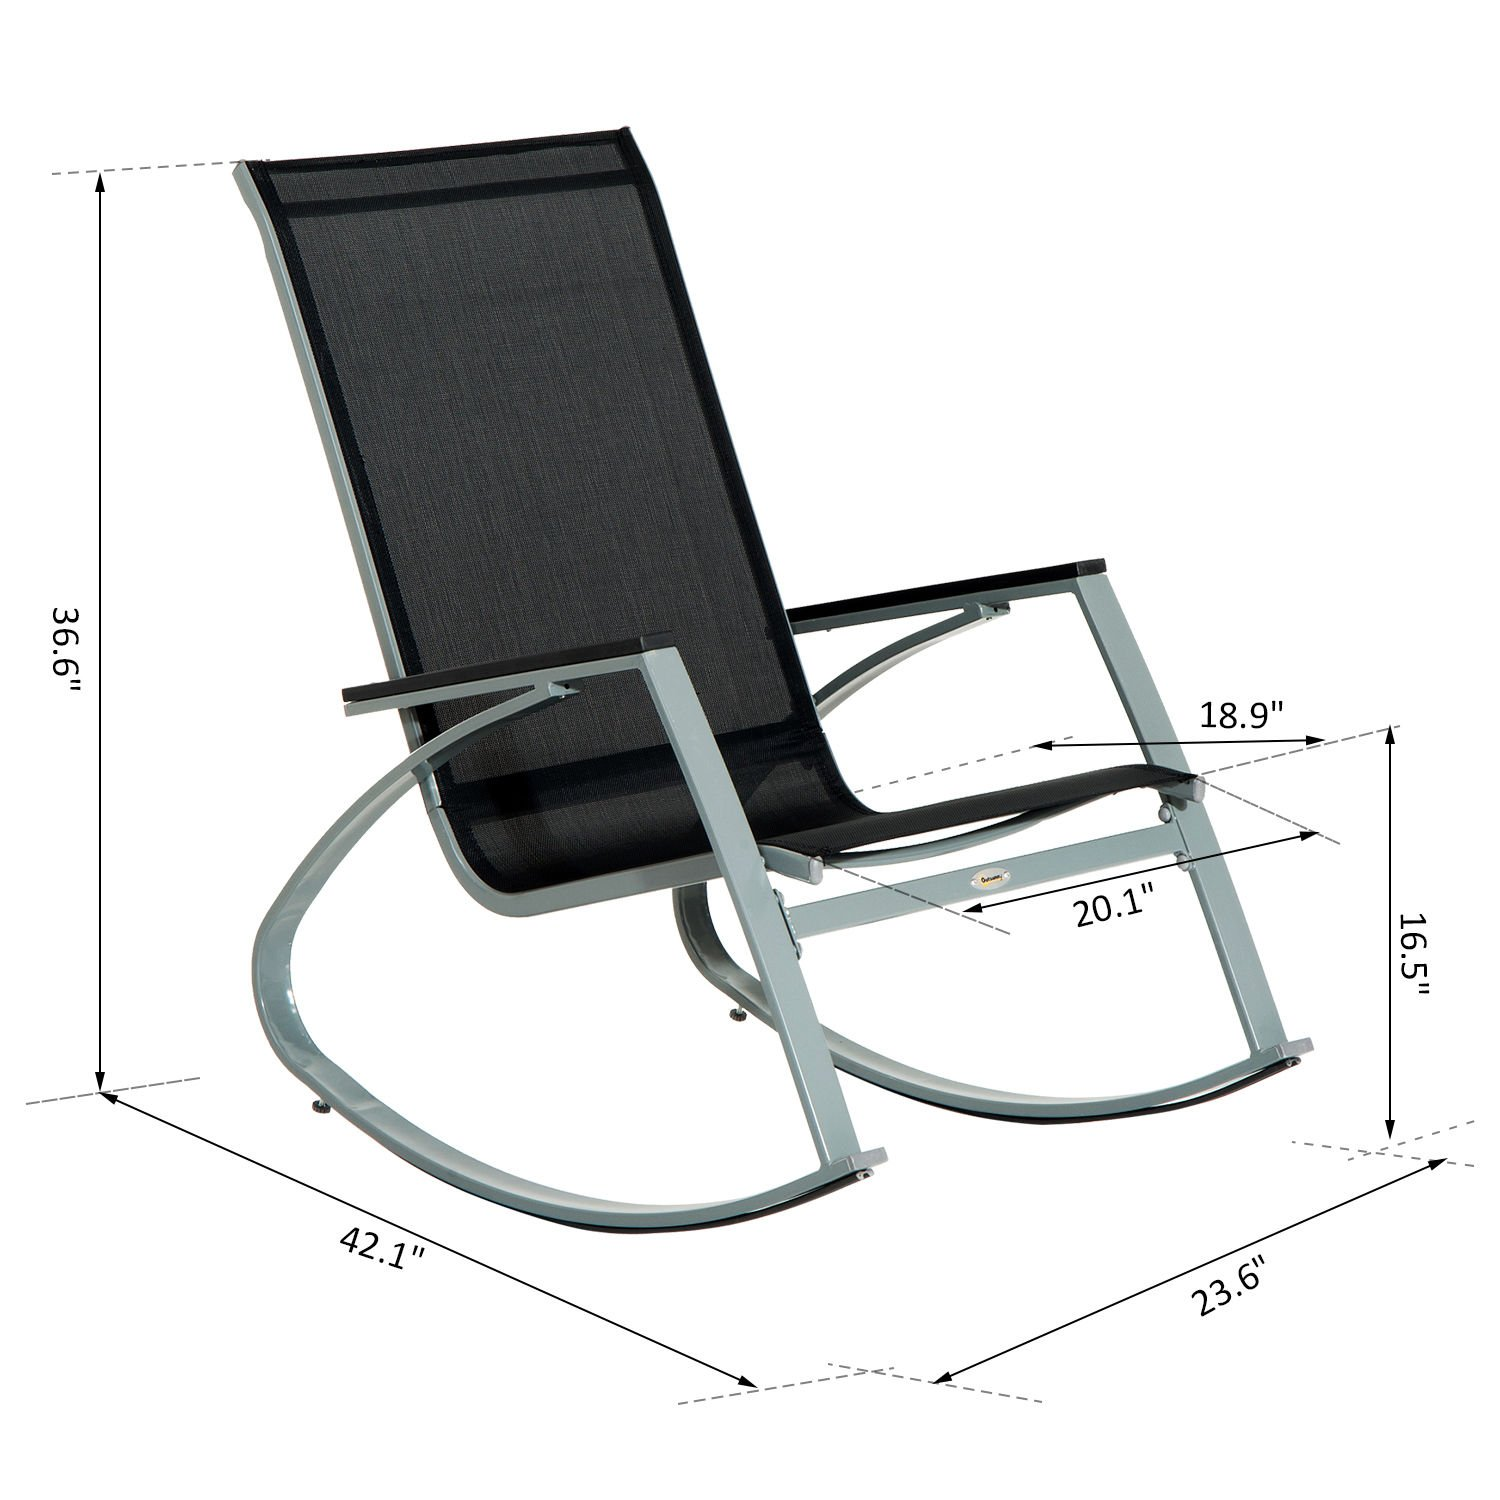 Outsunny Padded Steel Sling Porch Rocker Patio Chair Garden Outdoor Jpg  1500x1500 Composite Rocking Chairs Outdoor